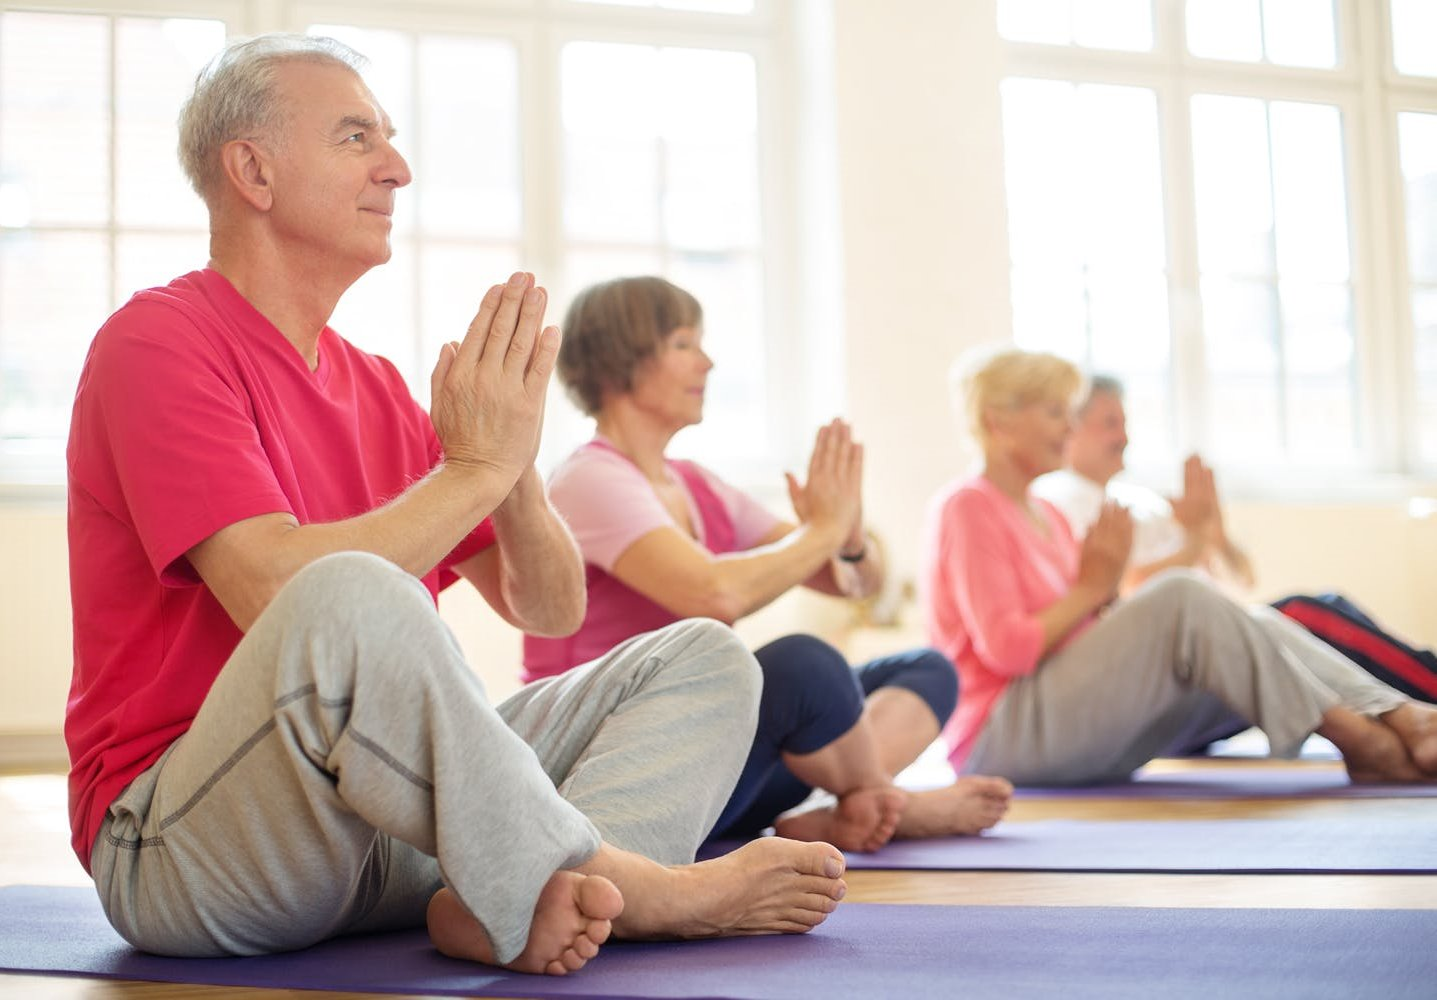 Seniors Yoga Google image from https://www.yogaclassnearyou.co.uk/yoga-classes-for-over-50s